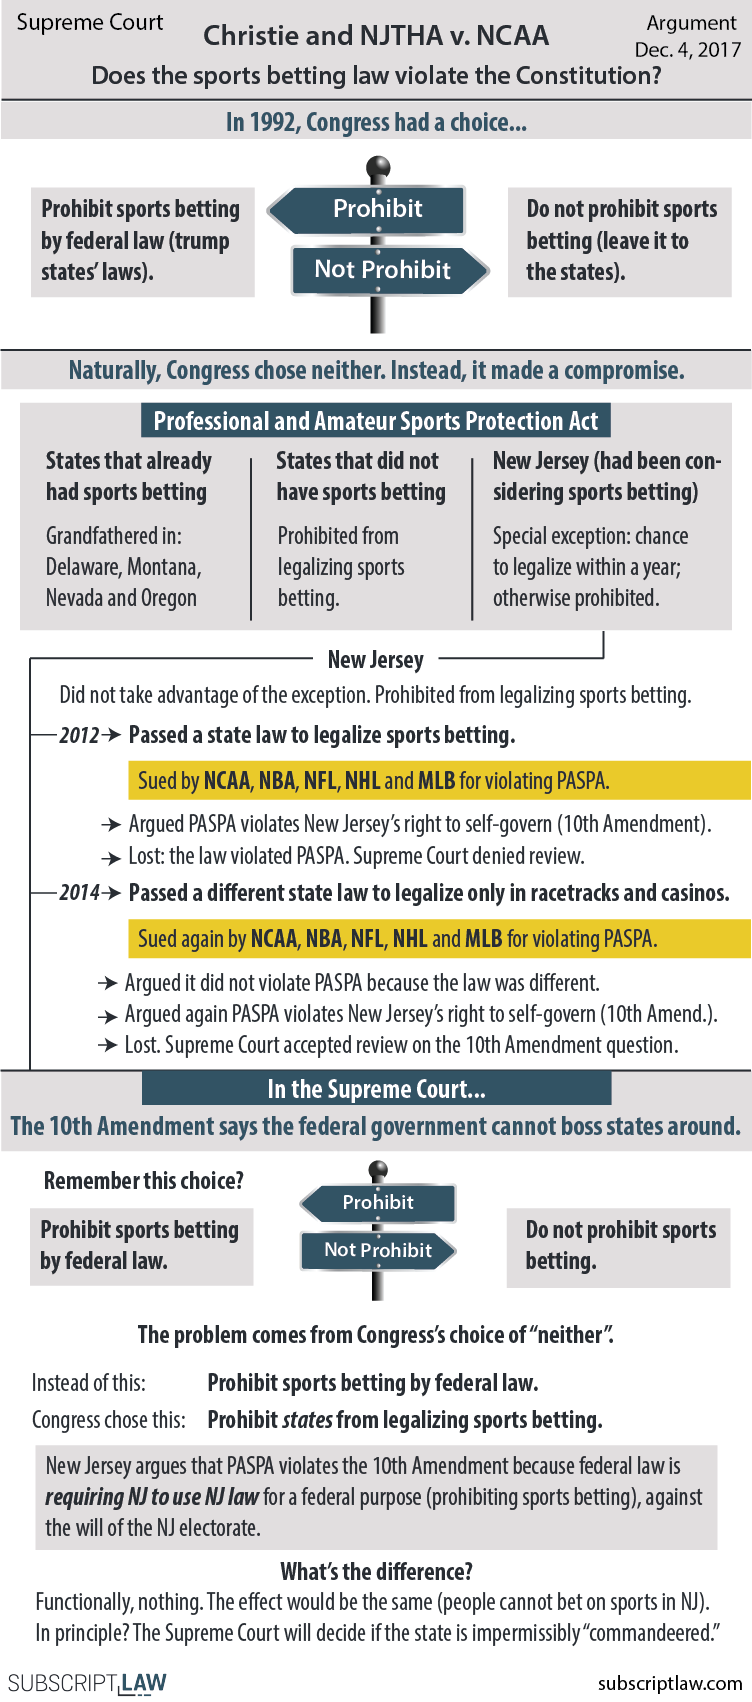 Christie v. NCAA - New Jersey wants to legalize sports betting, but a federal law says it can't. Does the federal law violate the Constitution?